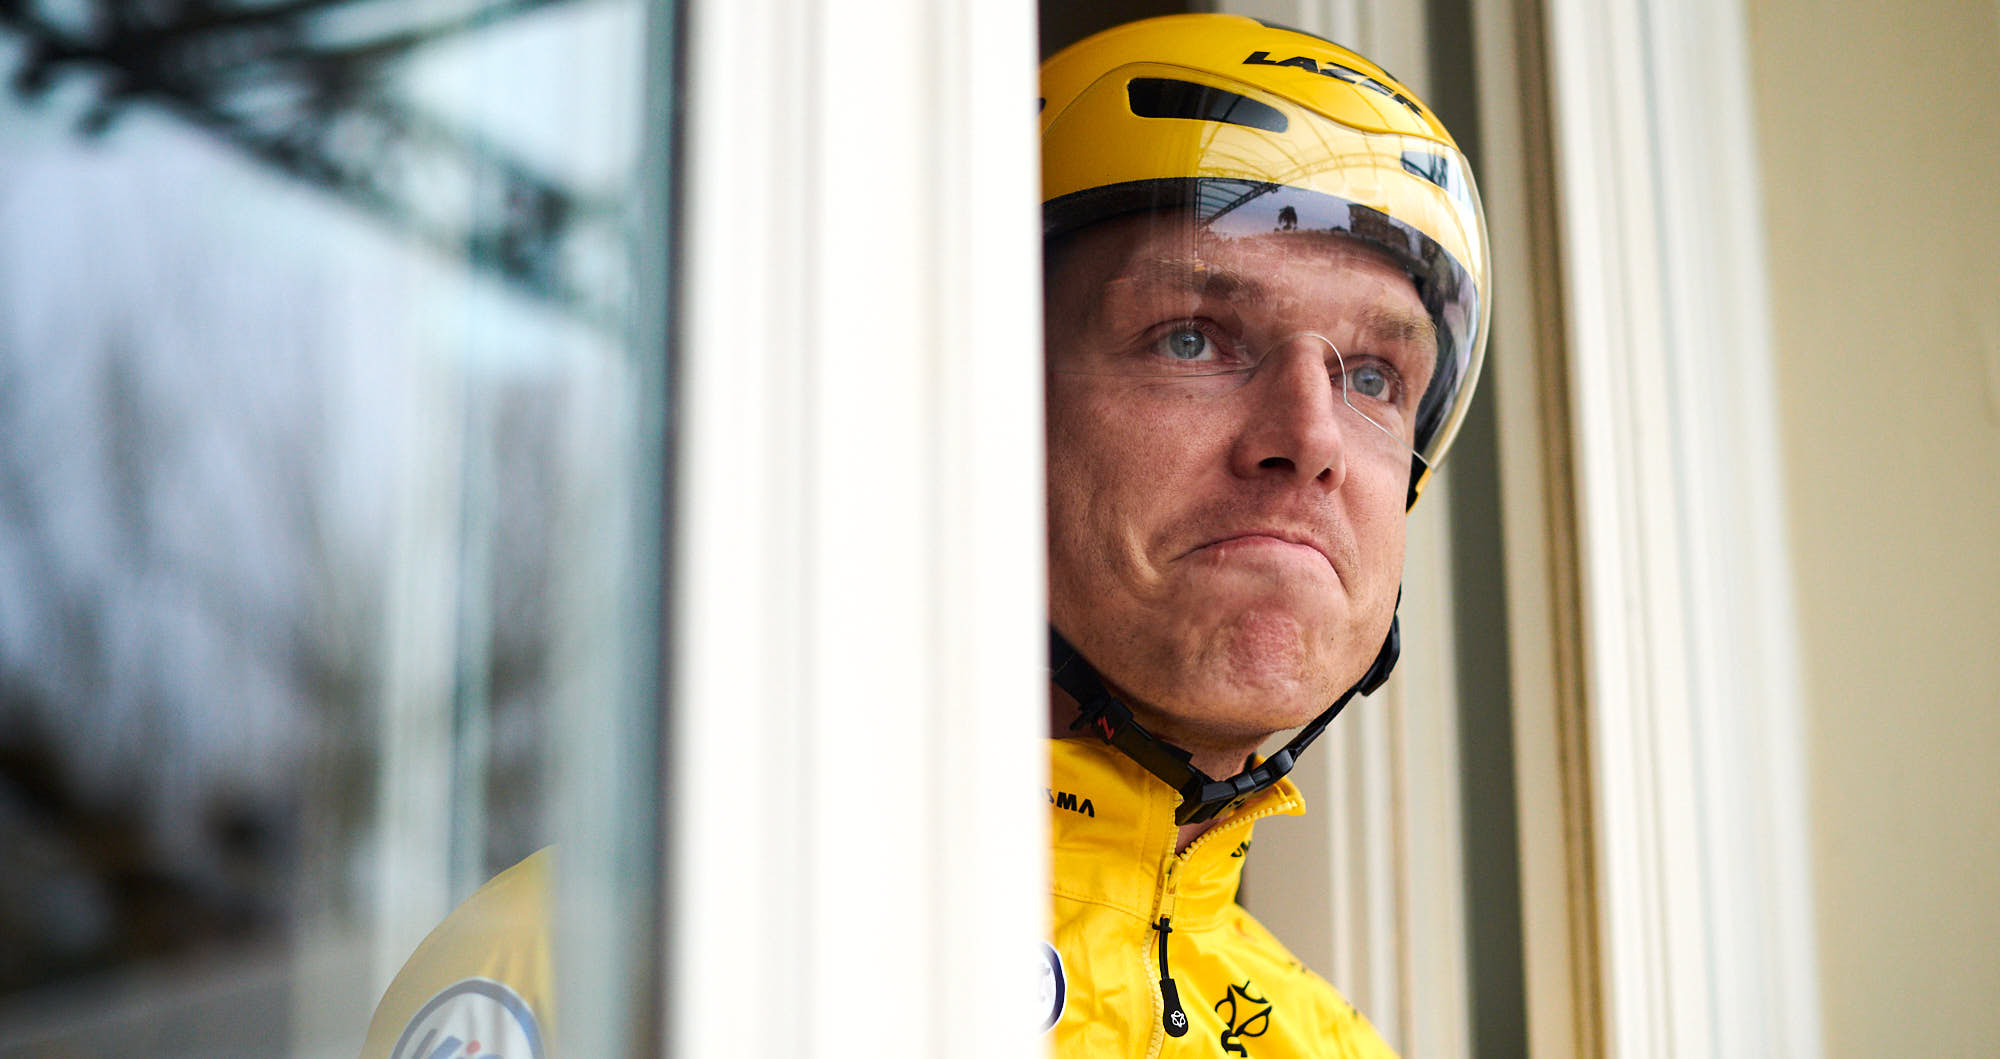 German cycling star Tony Martin not fancying the weather in Italy